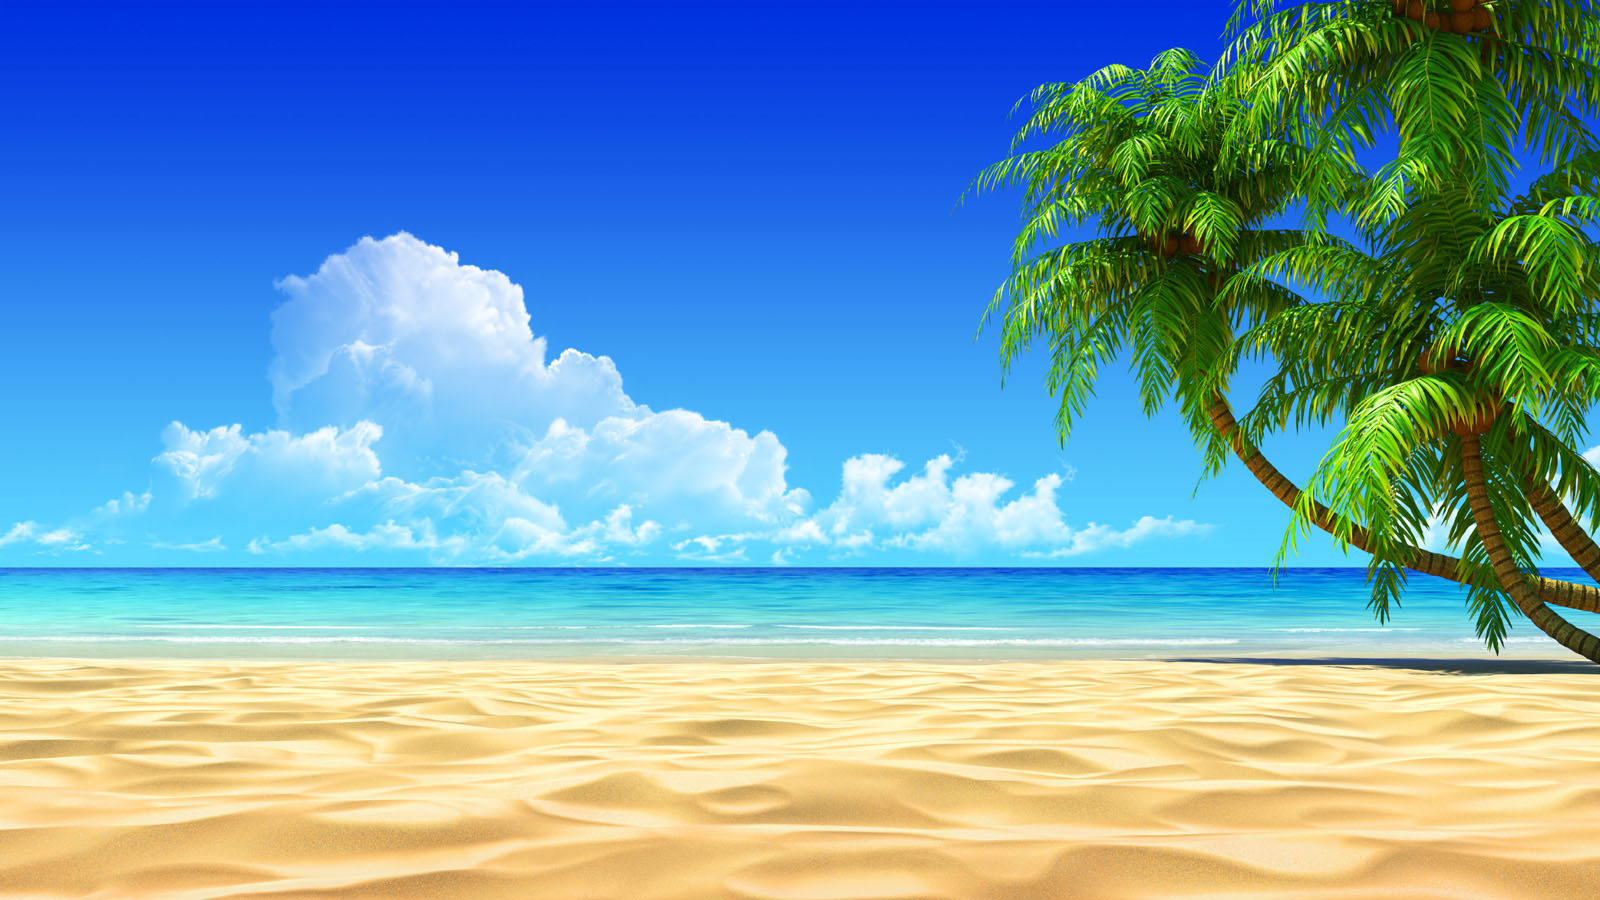 Beach HD Wallpapers Desktop Pictures One HD Wallpaper 1600x900